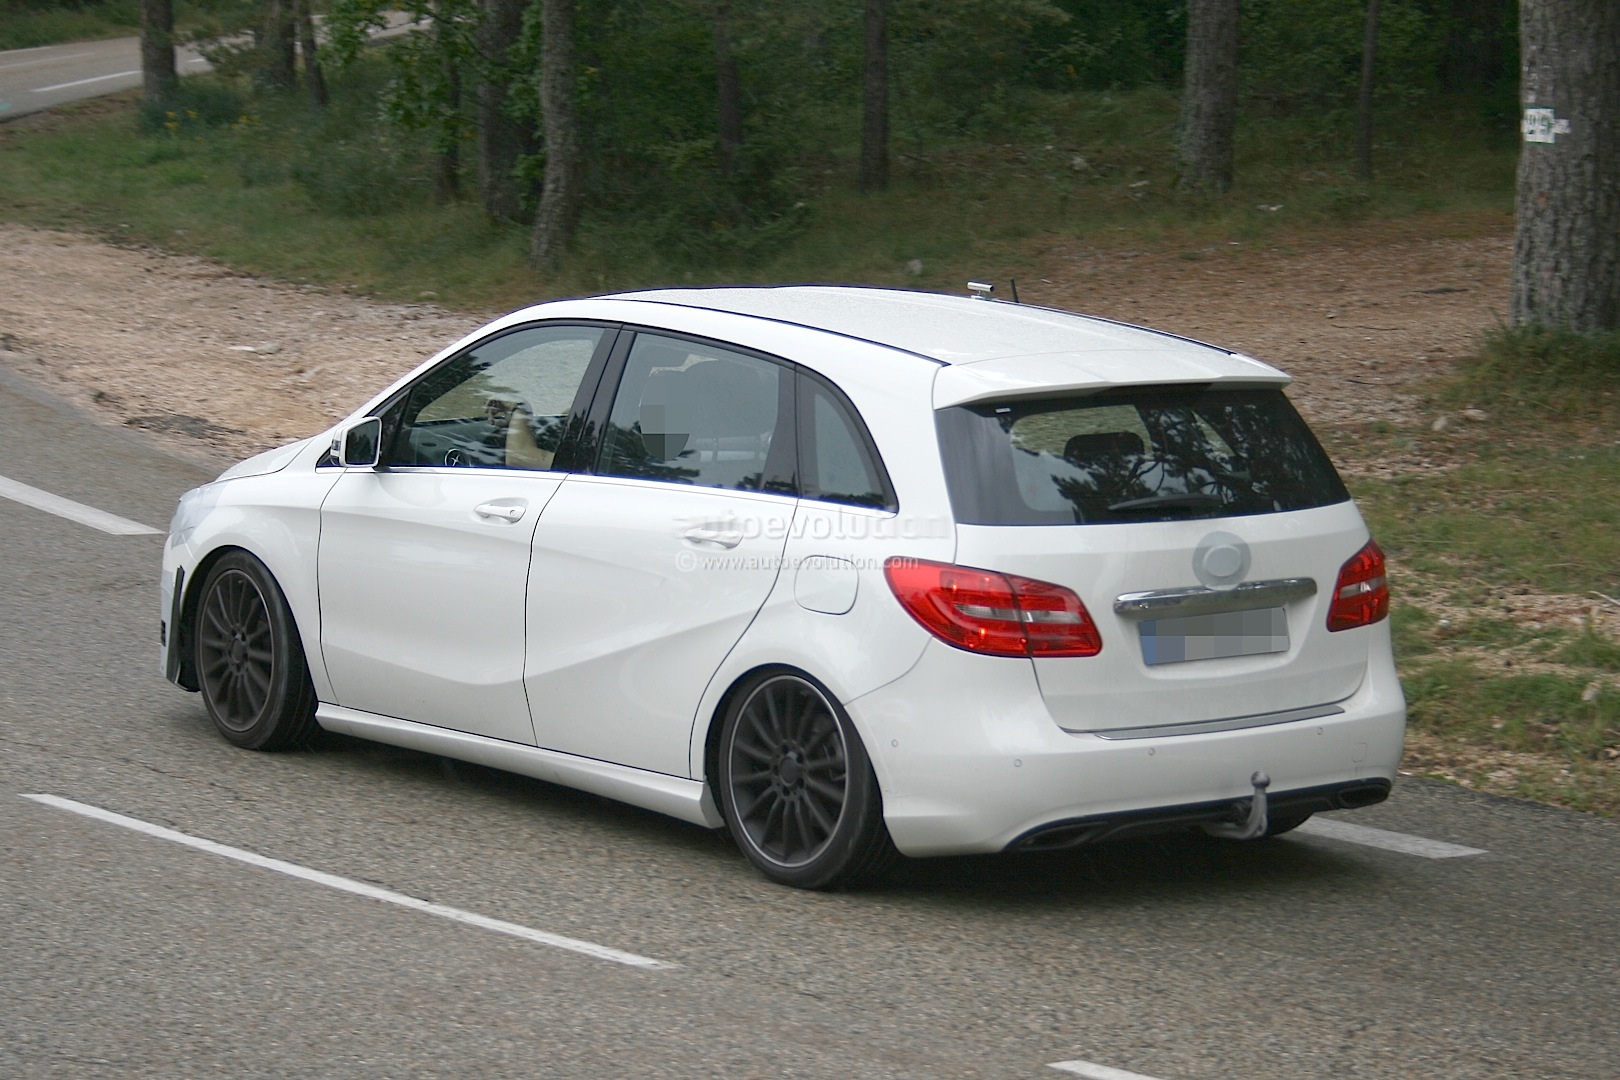 ... on this topic mercedes benz car reviews spyshots 2015 mercedes